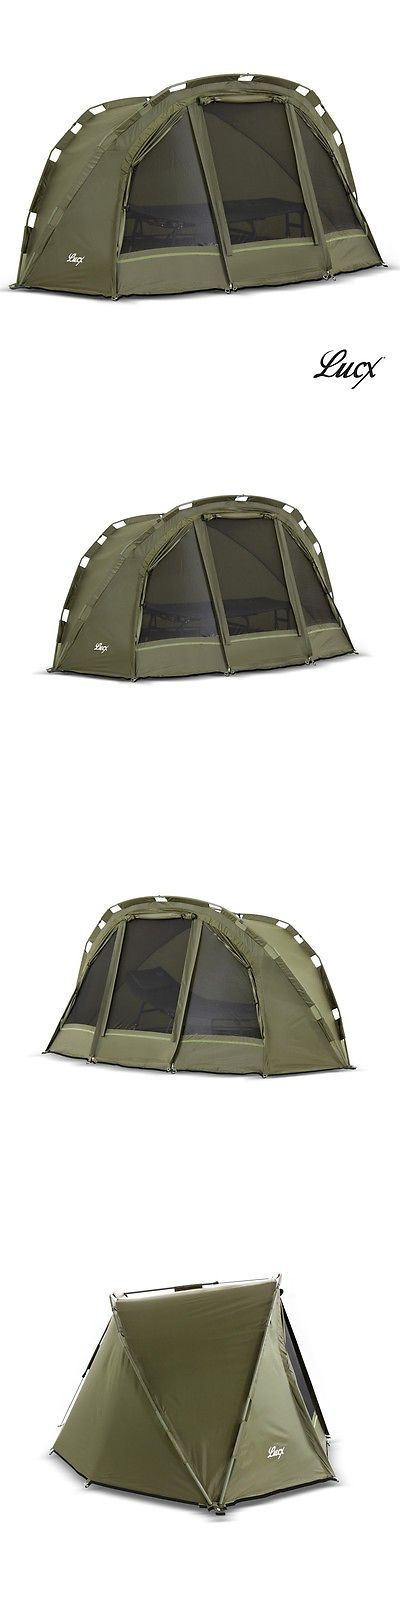 Tents and Shelters 72670: Bivvy 1,5 Man Angel Tent Carp Tent Carp Fishing Dome Tent Lucx New -> BUY IT NOW ONLY: $205.75 on eBay!